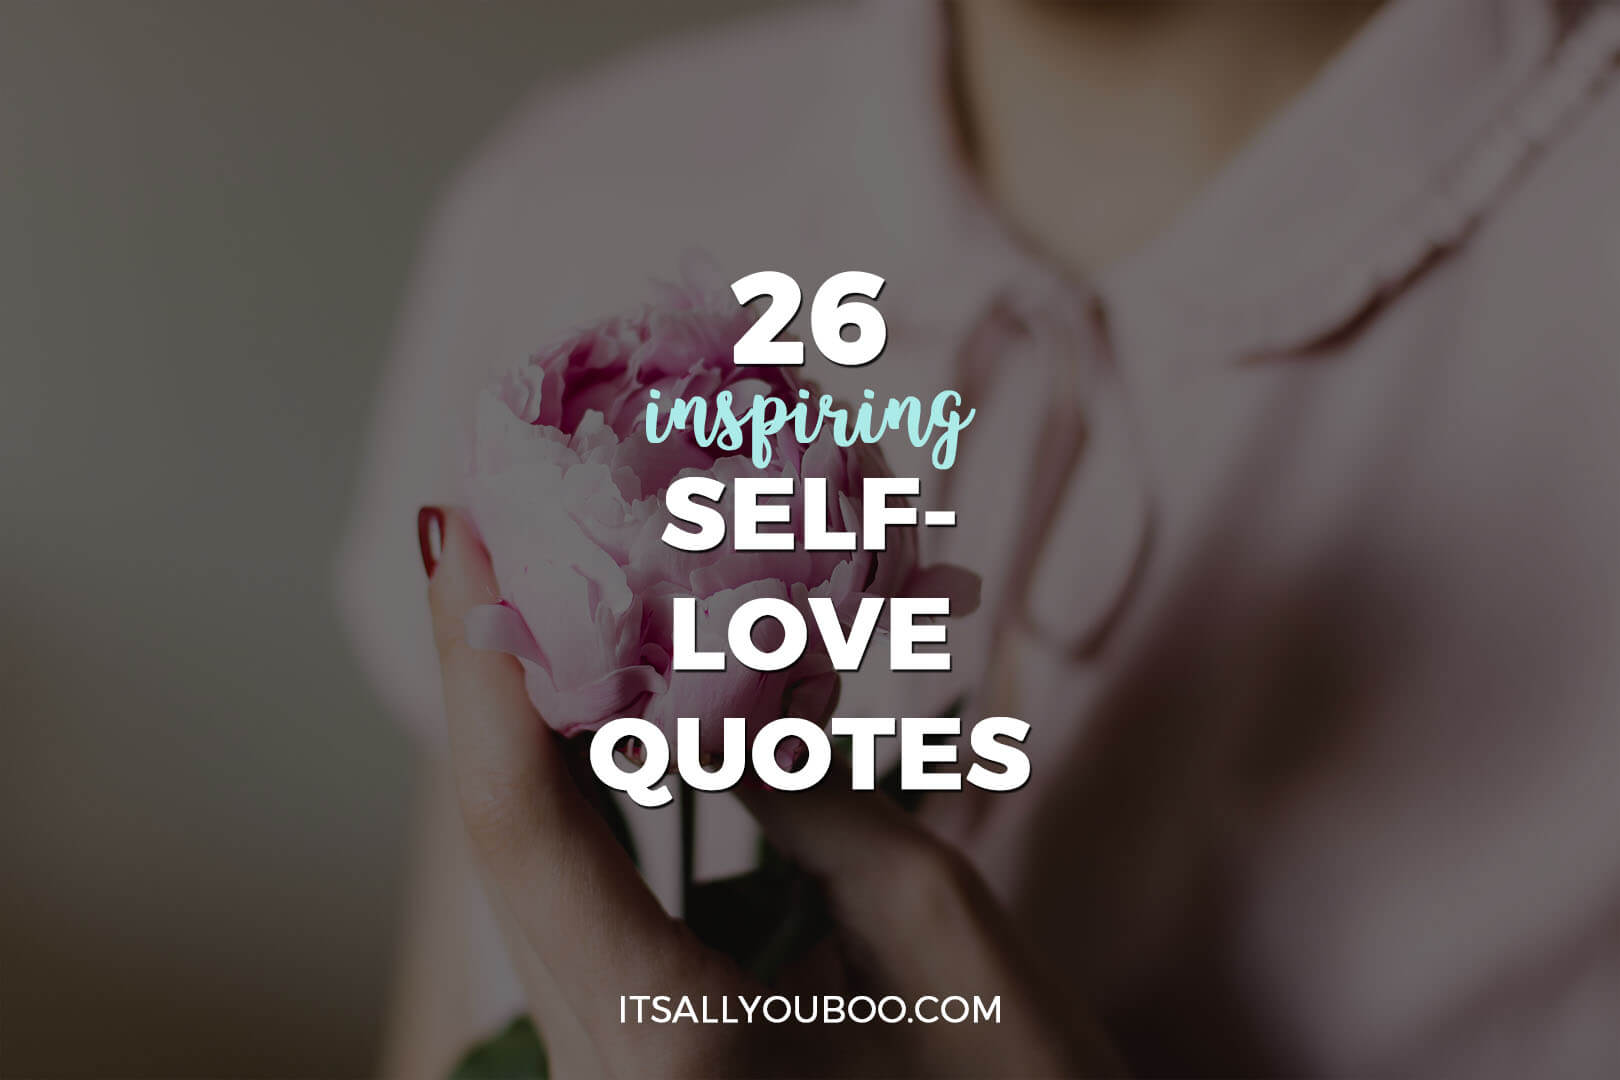 Smartly Sayings Love Quotes Images Download Love Quotes Images 26 Self Love Quotes Love Yourself Quotes inspiration Love Quotes Images